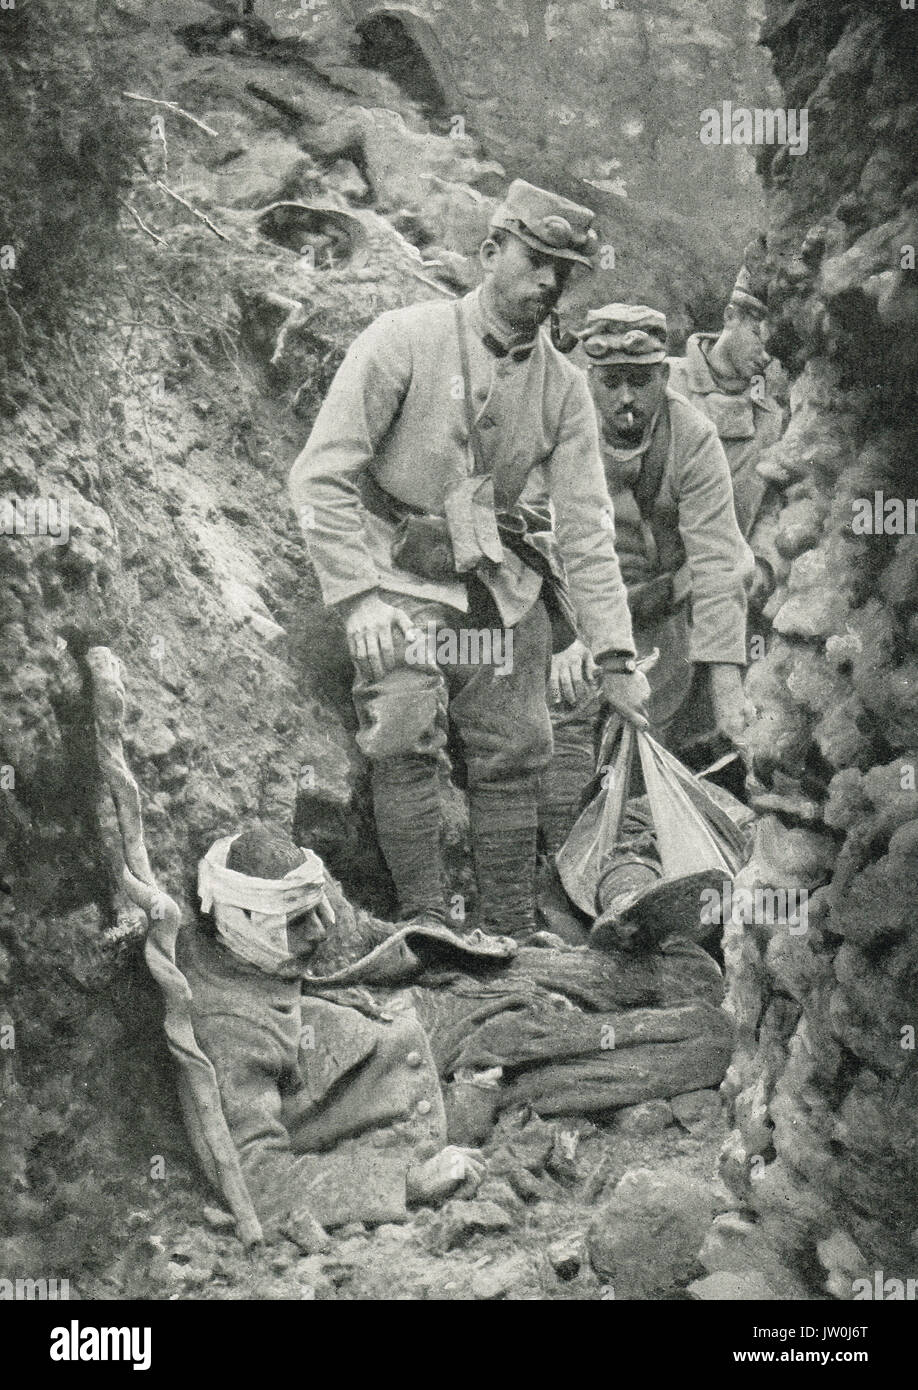 Trench warfare, removing the dead, WW1 - Stock Image